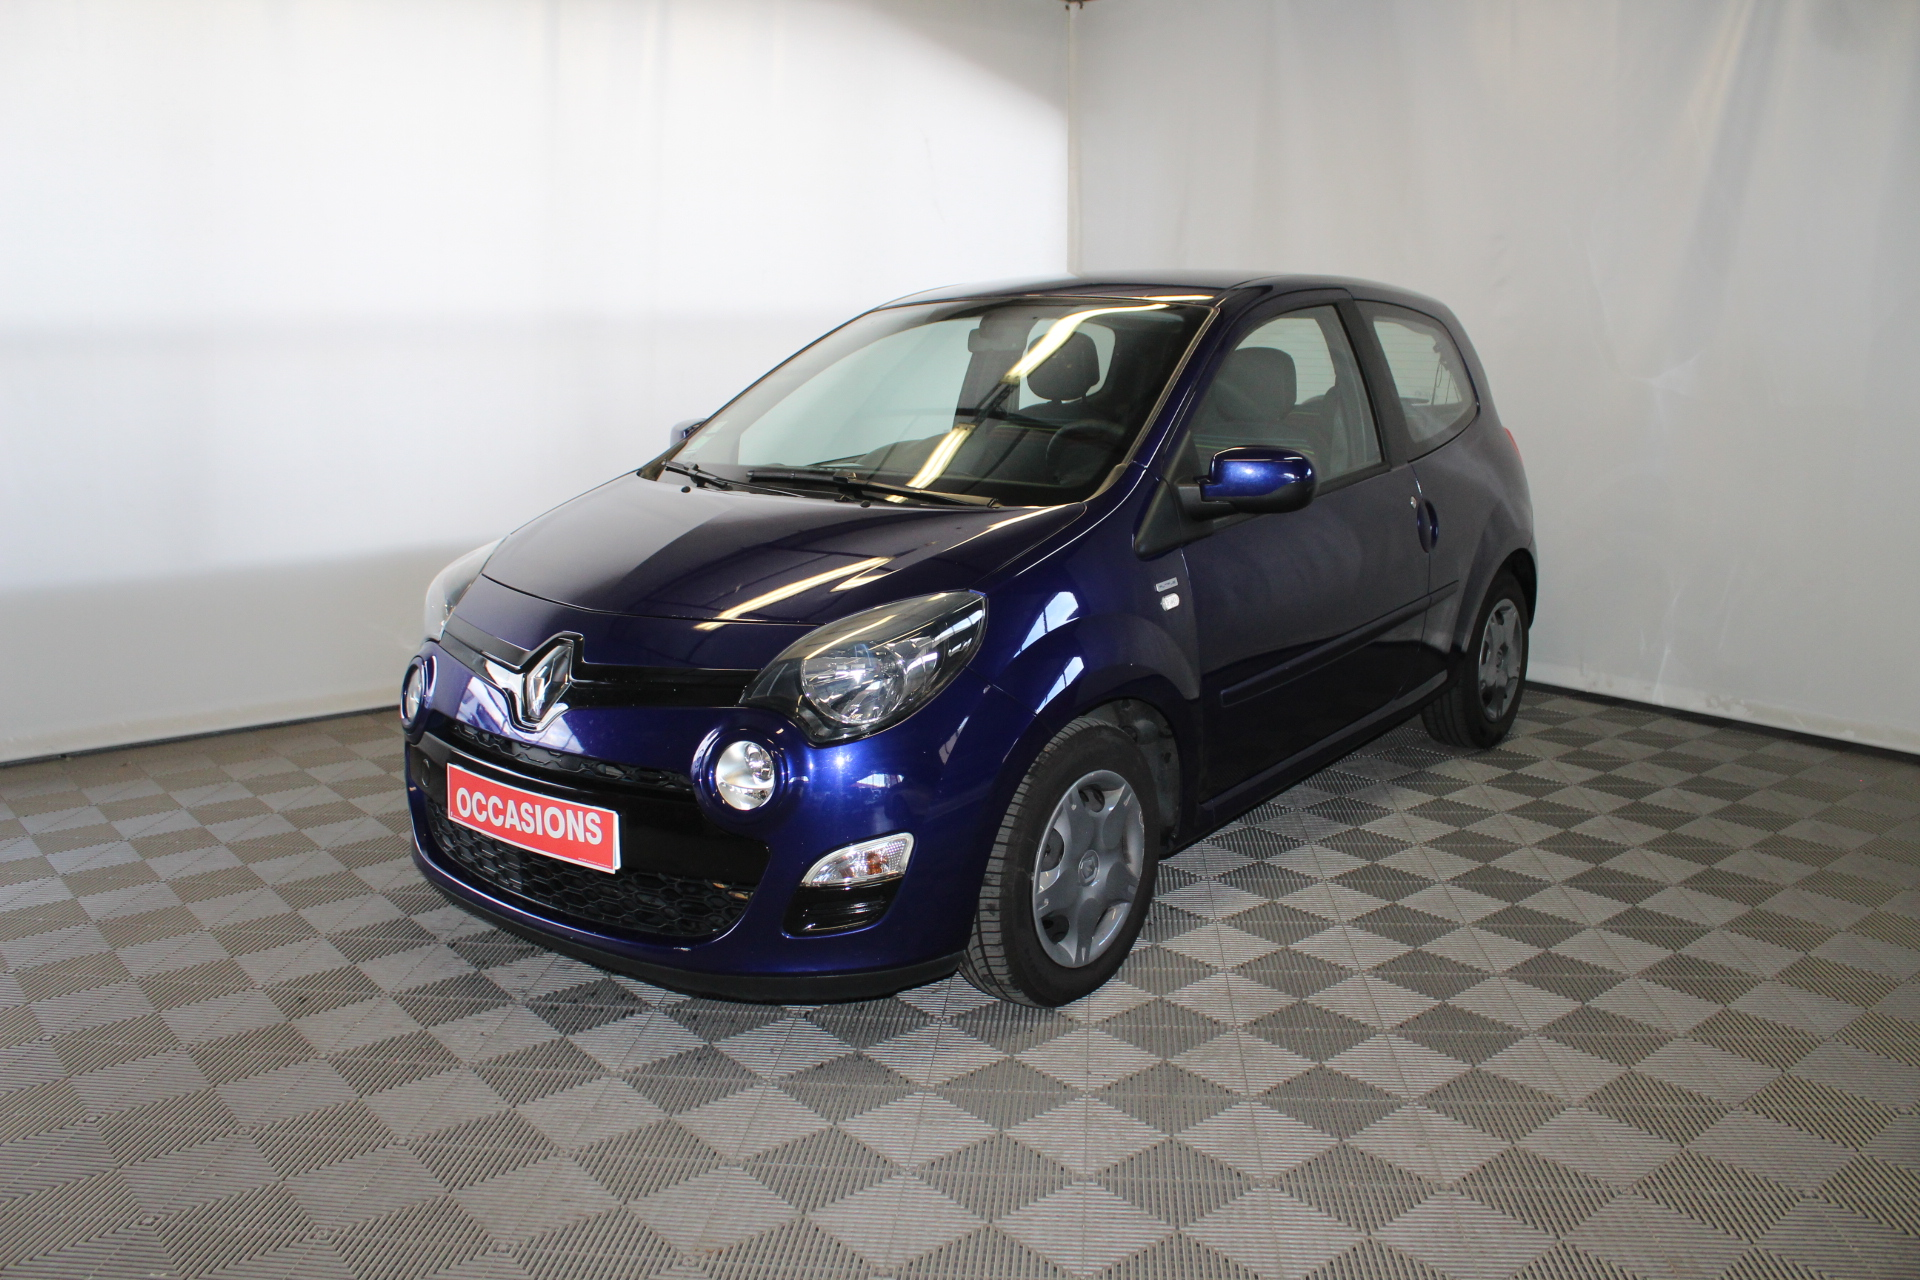 RENAULT TWINGO II 2013 à 5900 € - Photo n°1